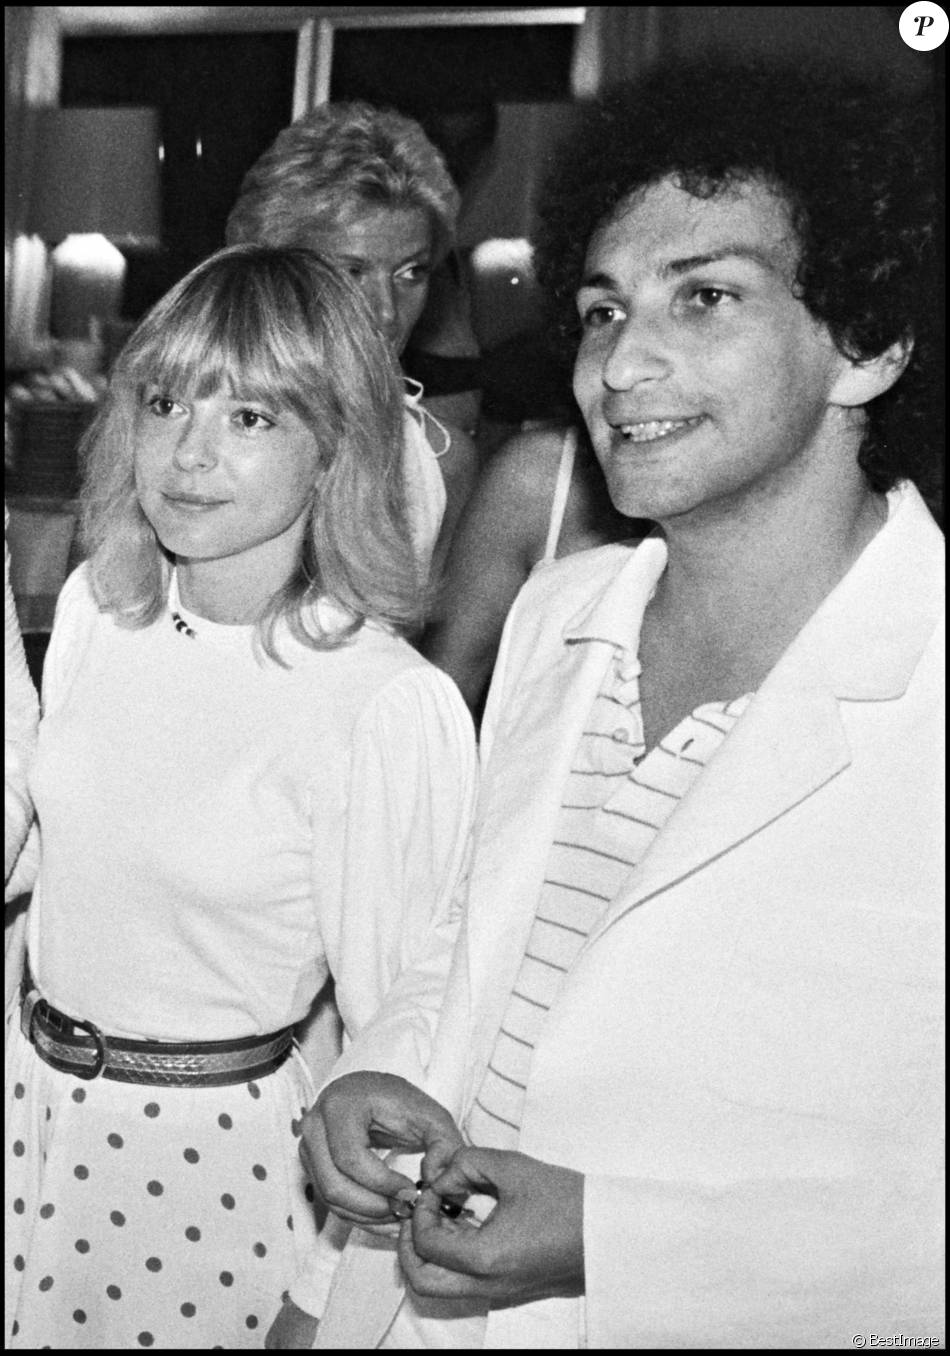 michel berger et france gall la soir e blanche d 39 eddie barclay saint tropez le 21 ao t 1980. Black Bedroom Furniture Sets. Home Design Ideas